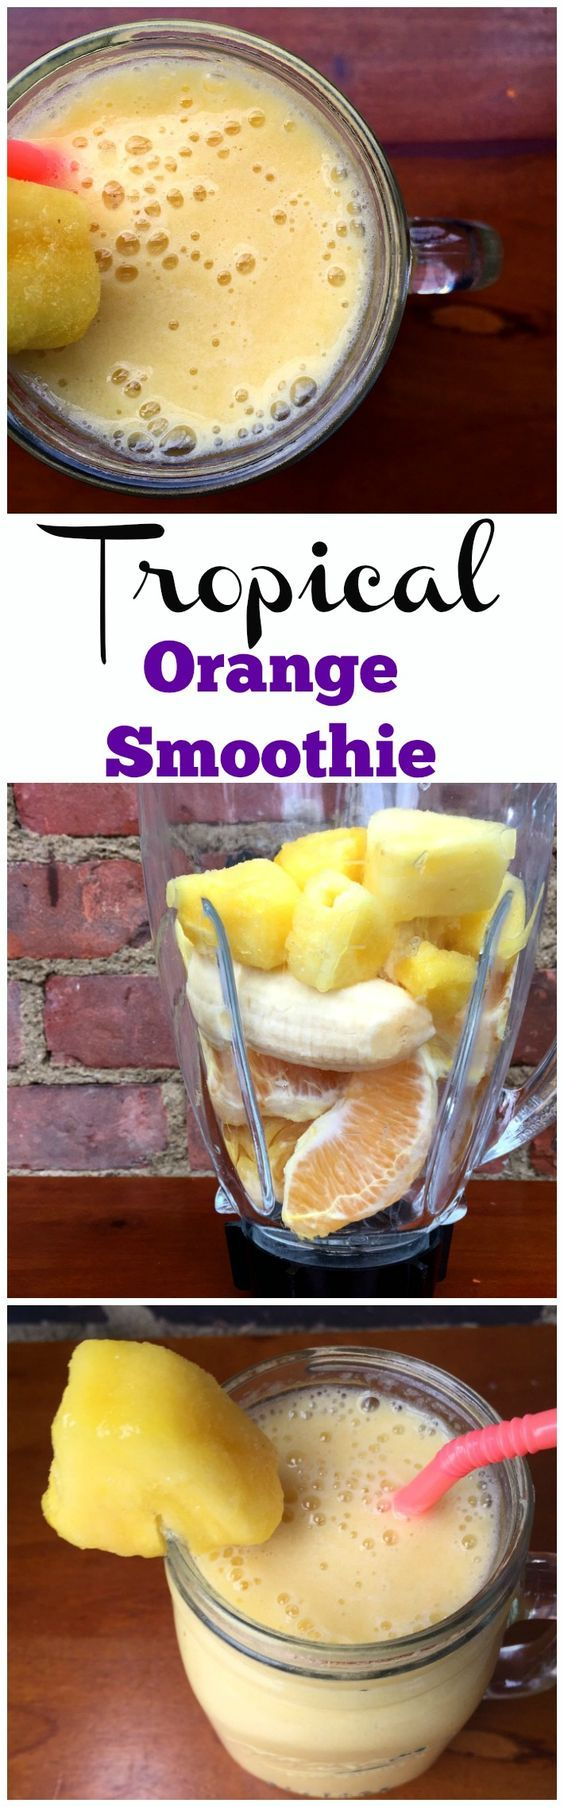 With only four easy ingredients, this smoothie contains a boost of vitamins and is a light and refreshing way to start your day.: